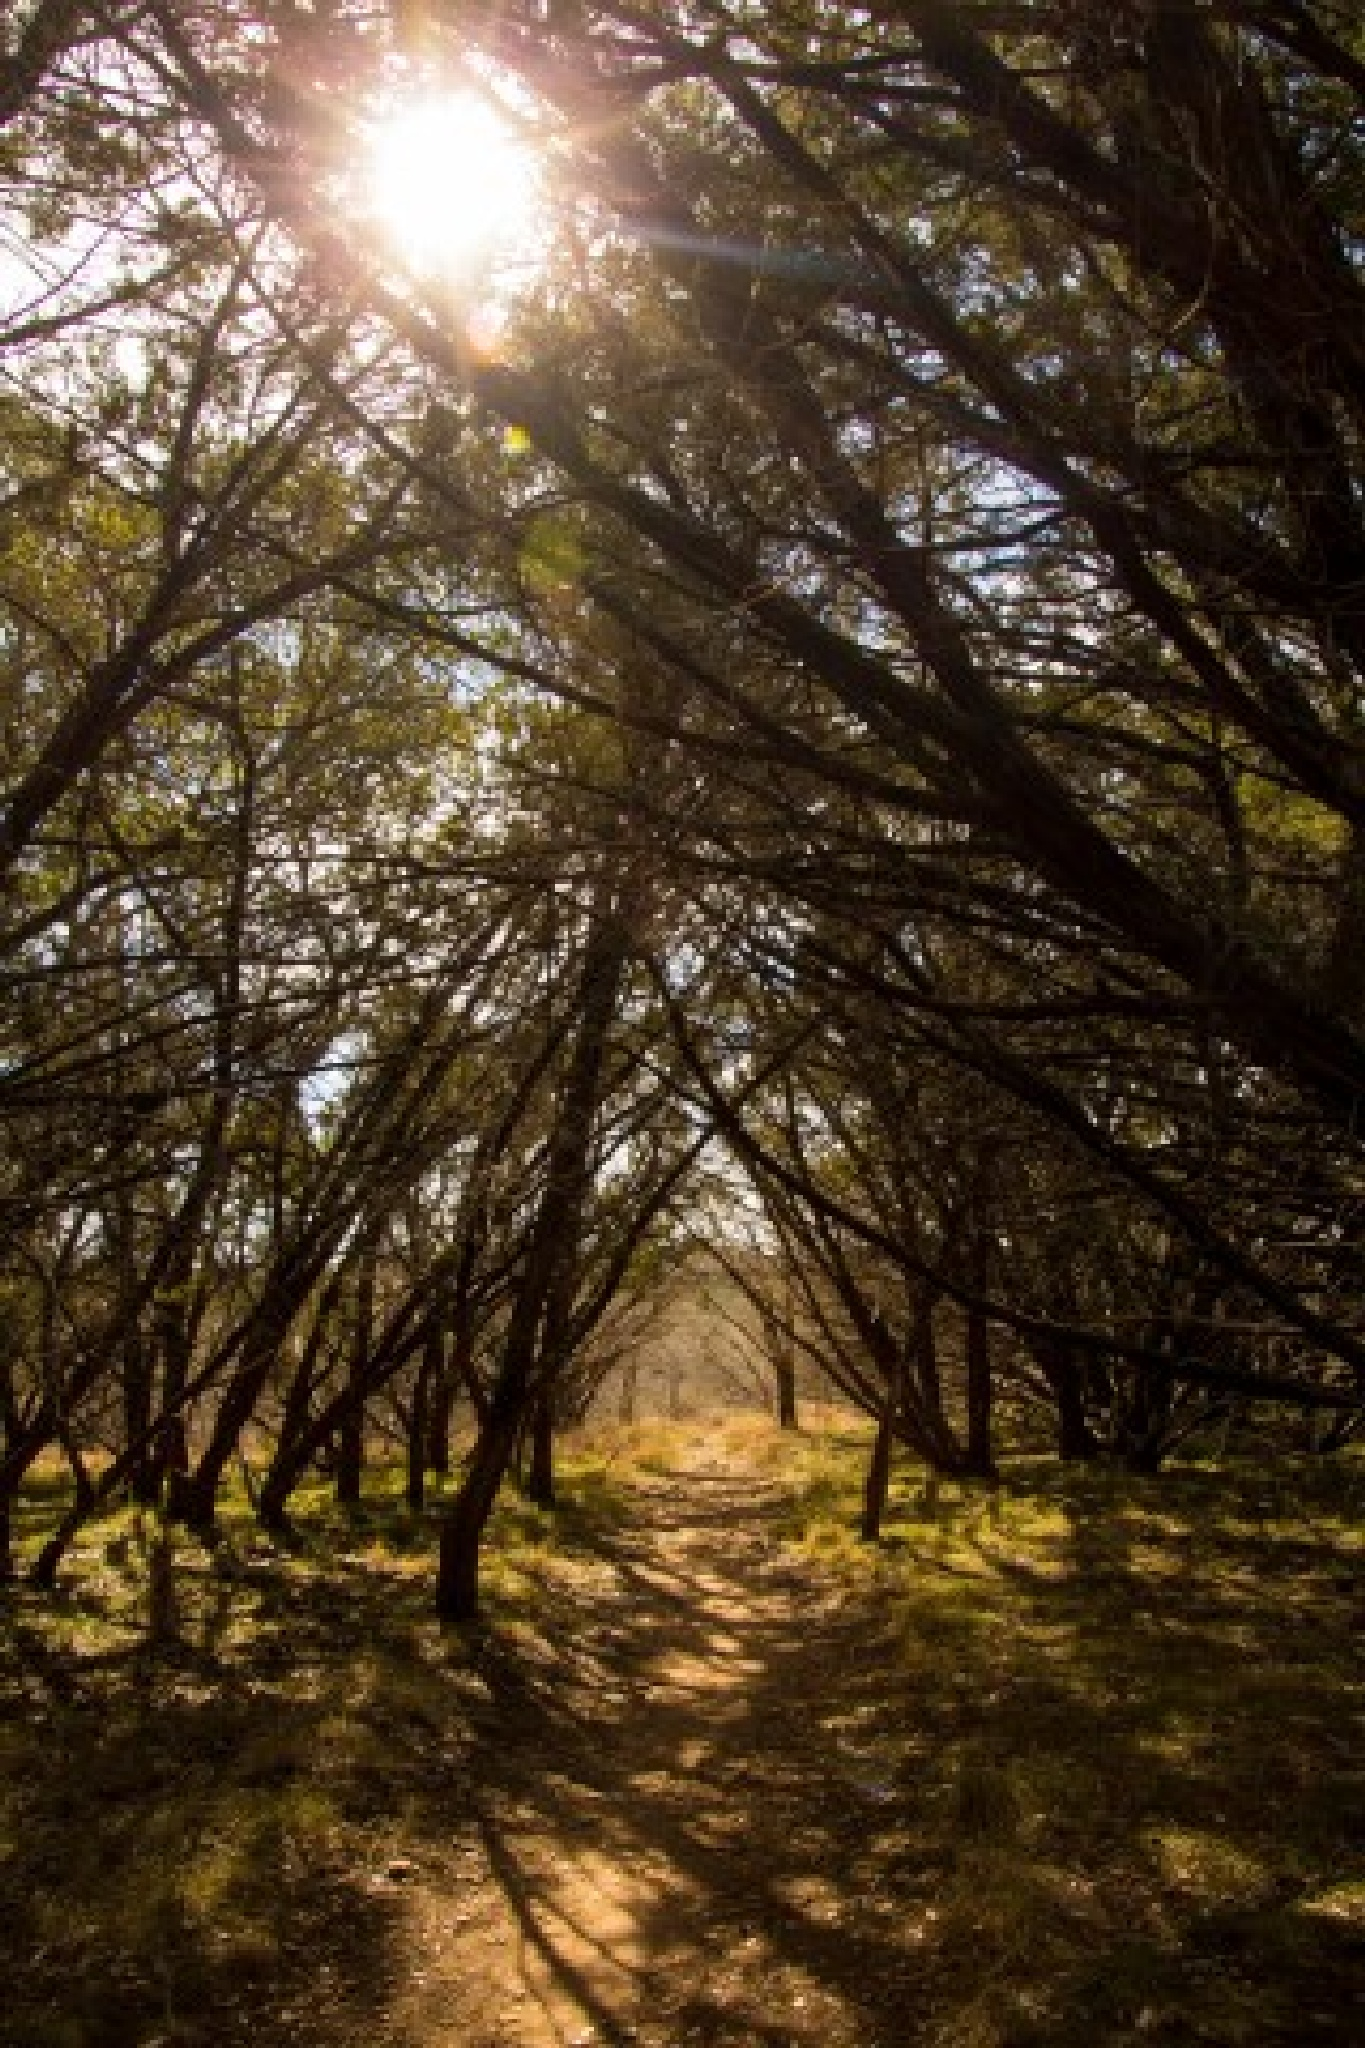 Sun through trees by hhines312